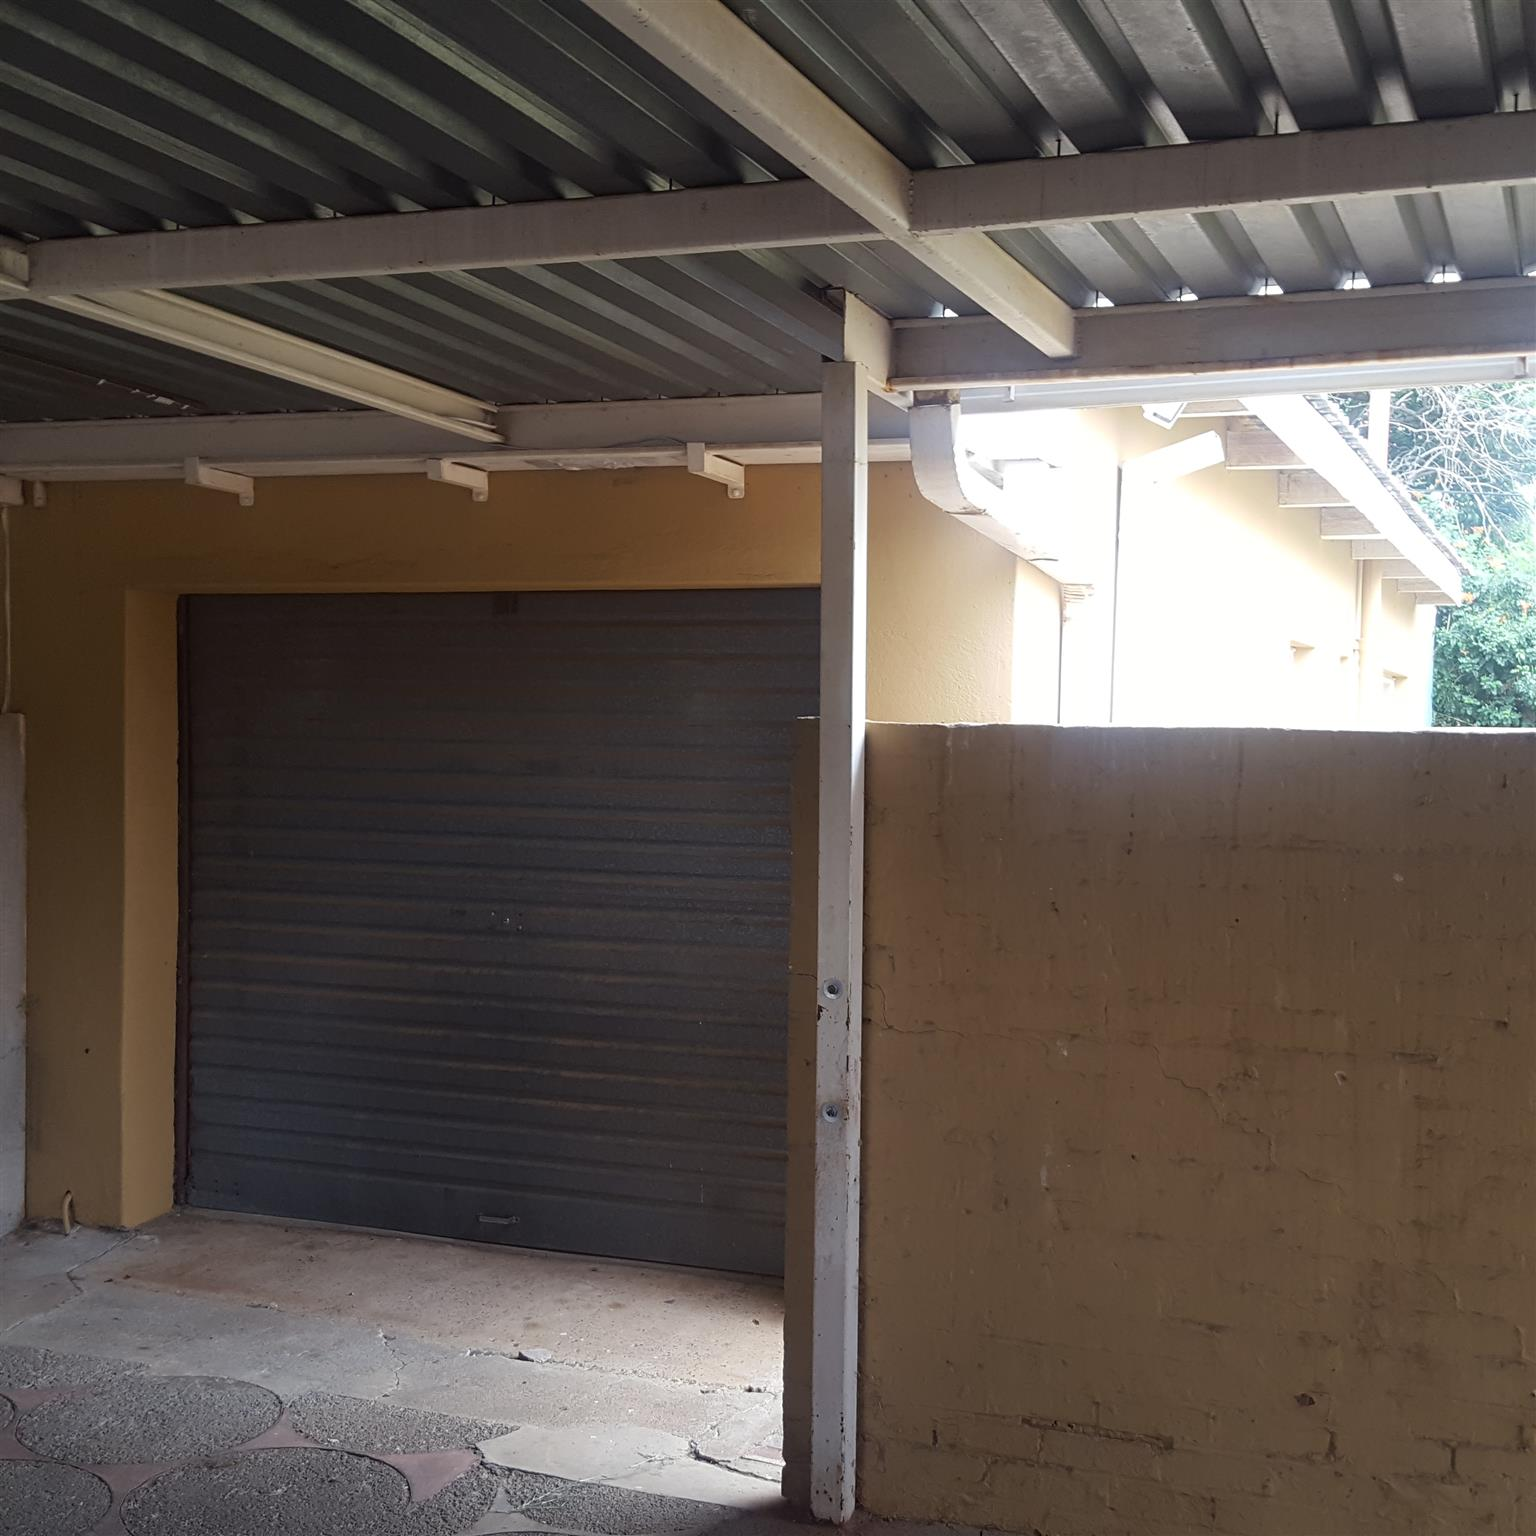 Family house for sale in good area in Flamingo park Welkom.